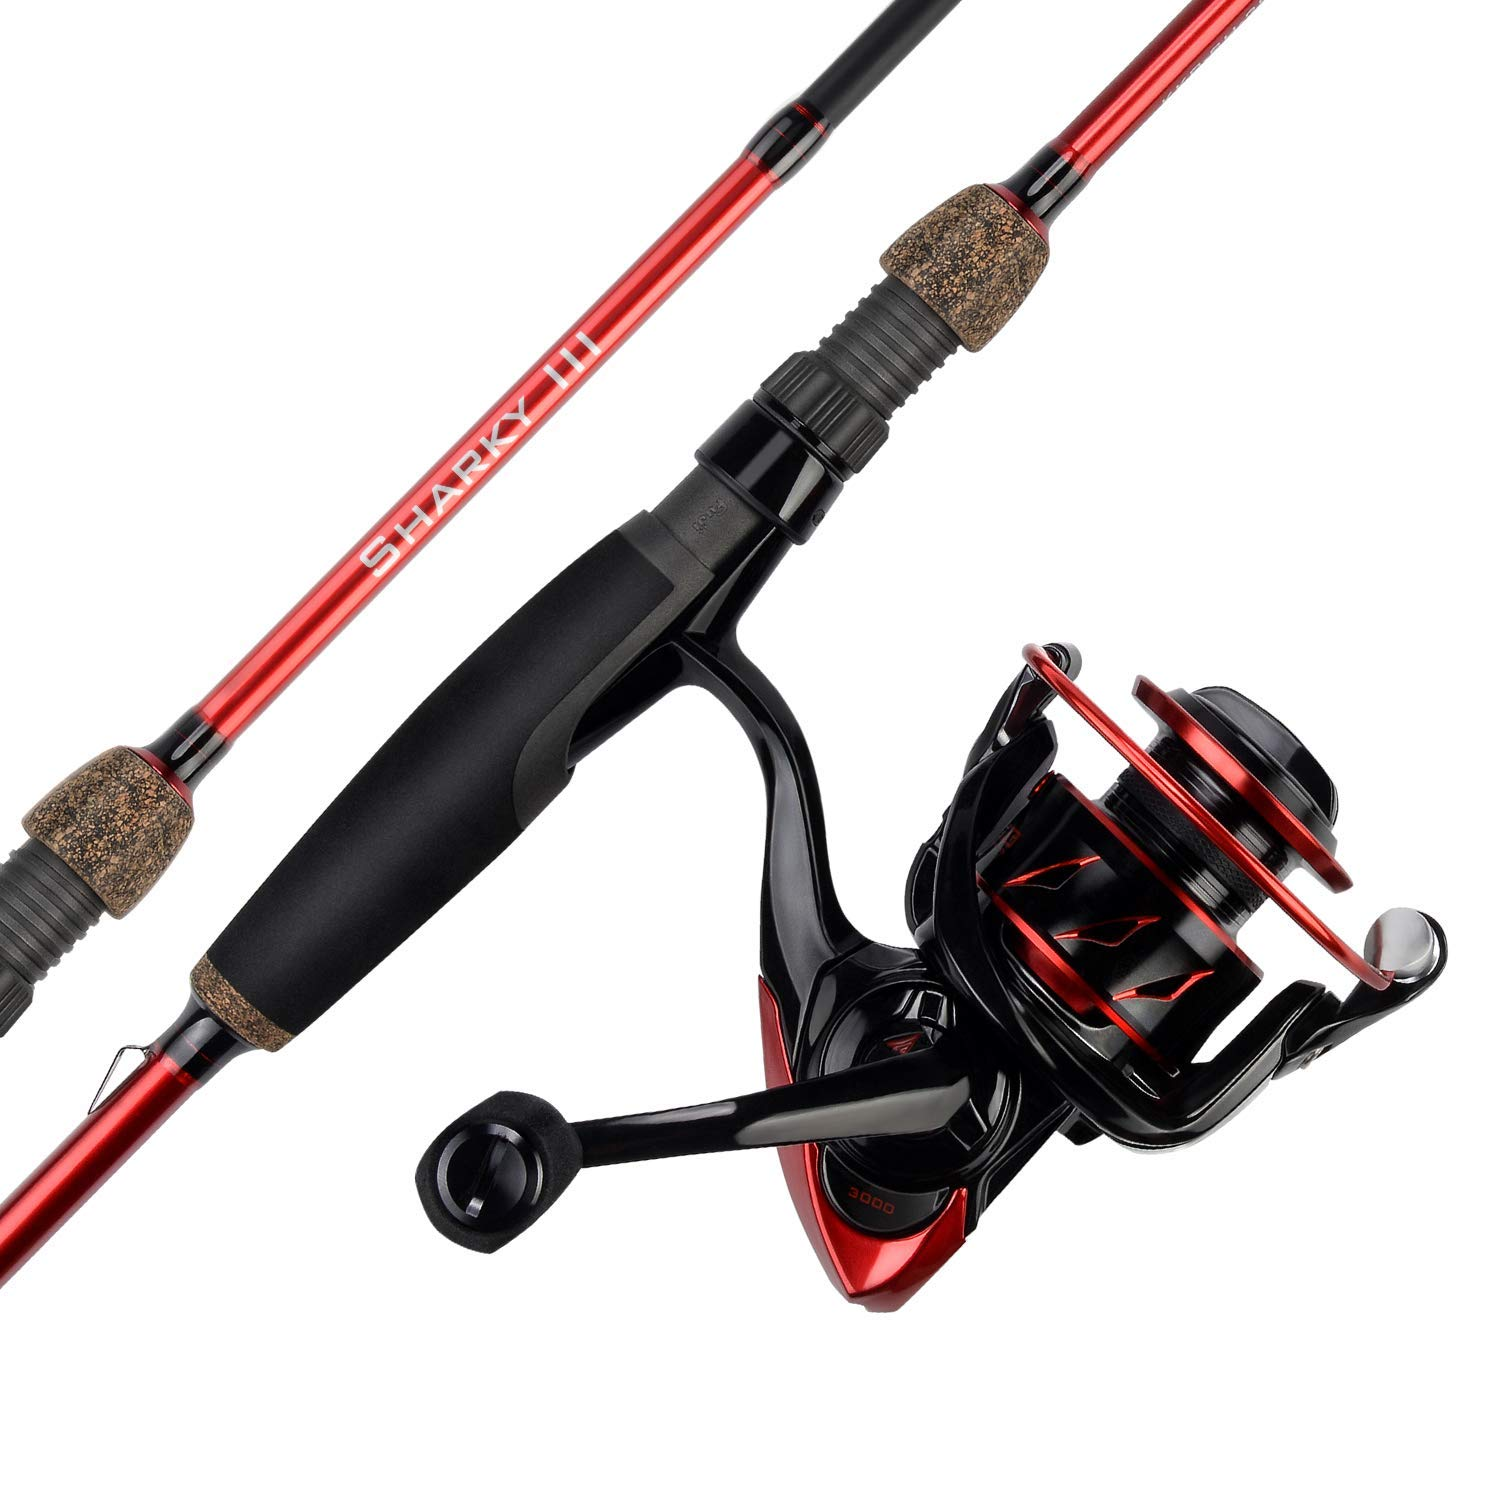 KastKing Sharky III Spinning Rod Reel